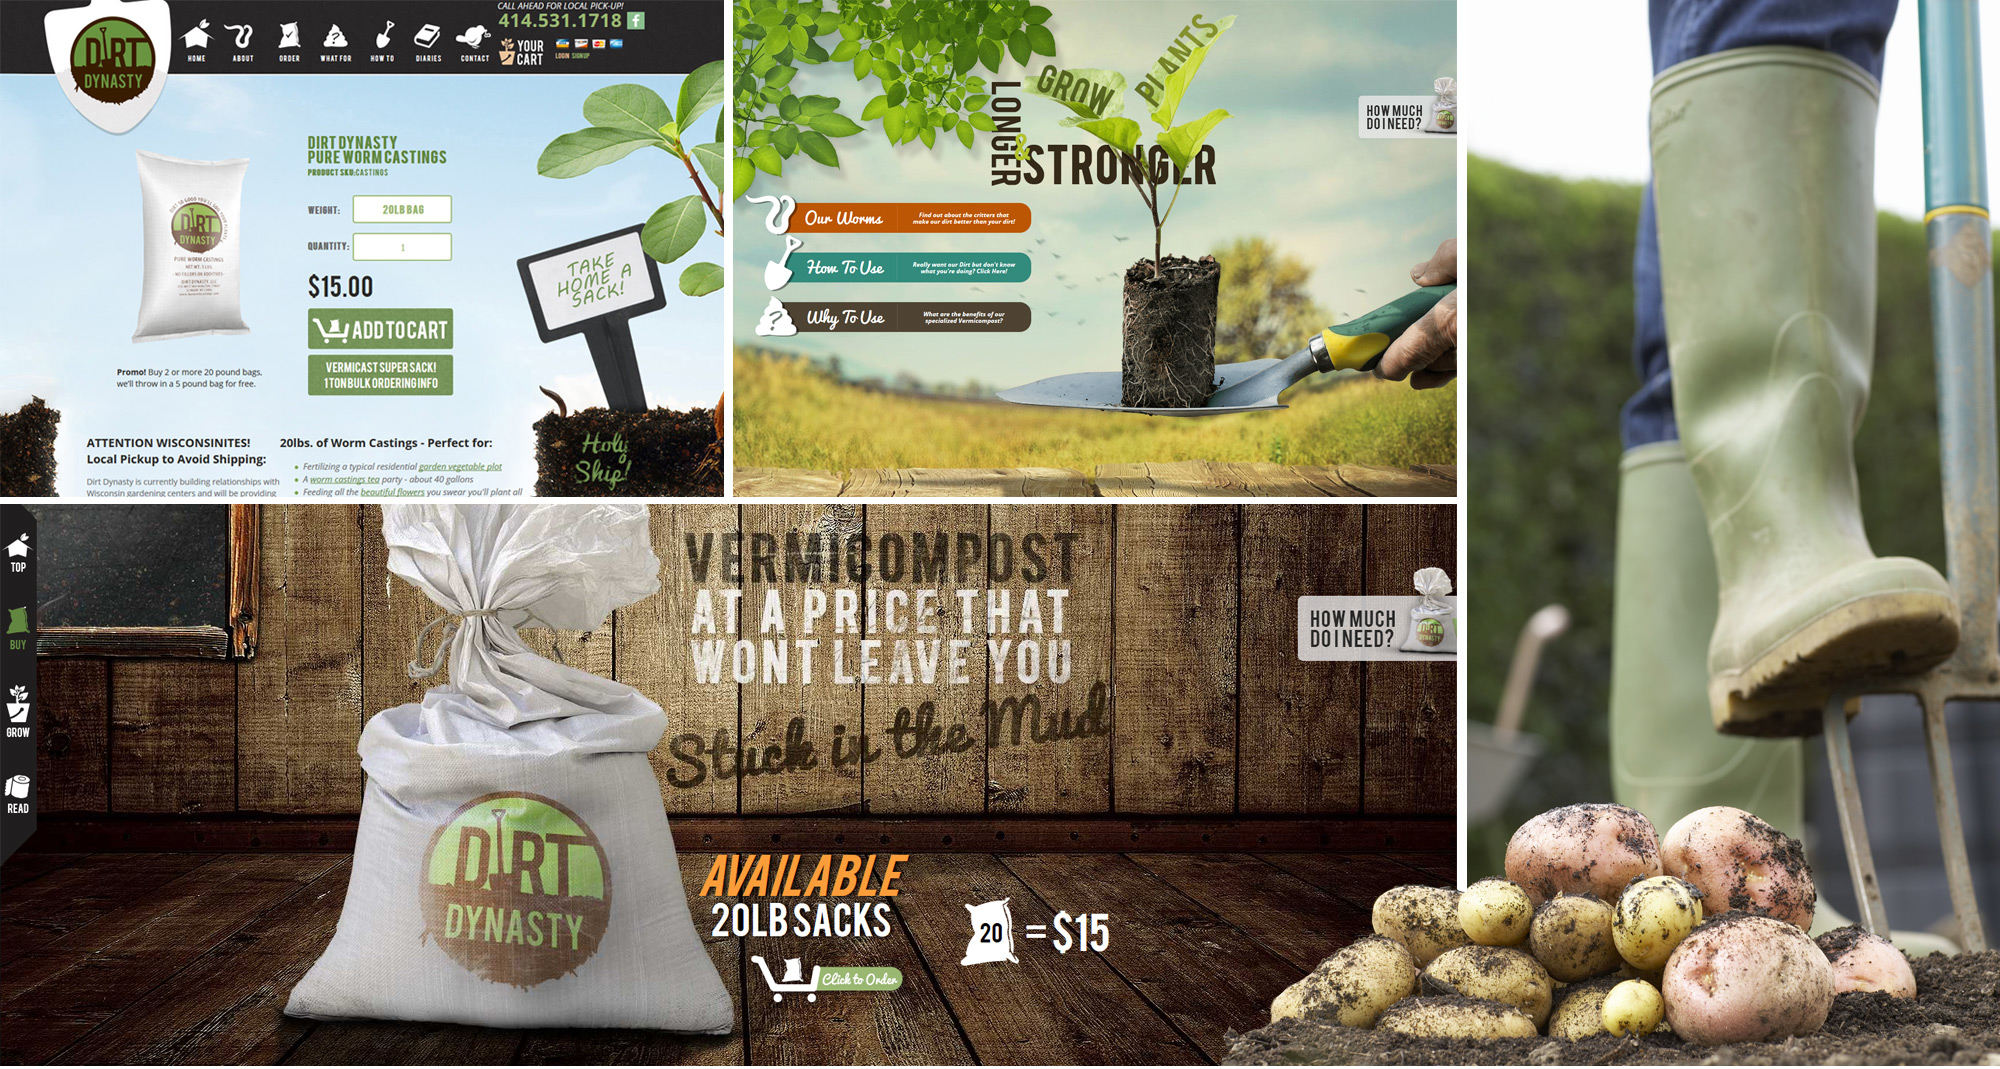 Dirt Dynasty Website Designed by iNET